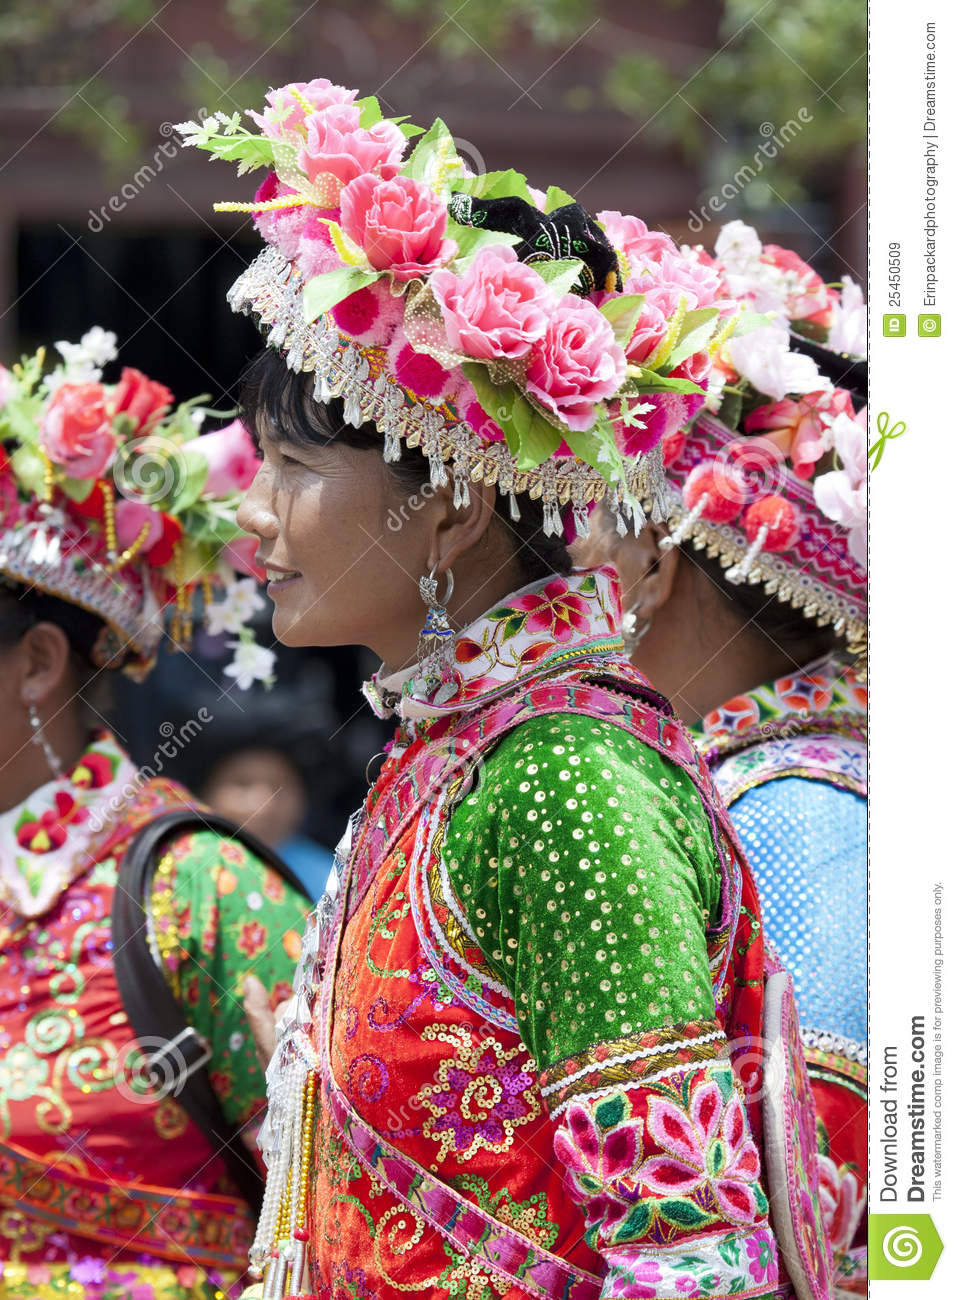 Women's | Southern Apparel :: Soft, Stylish